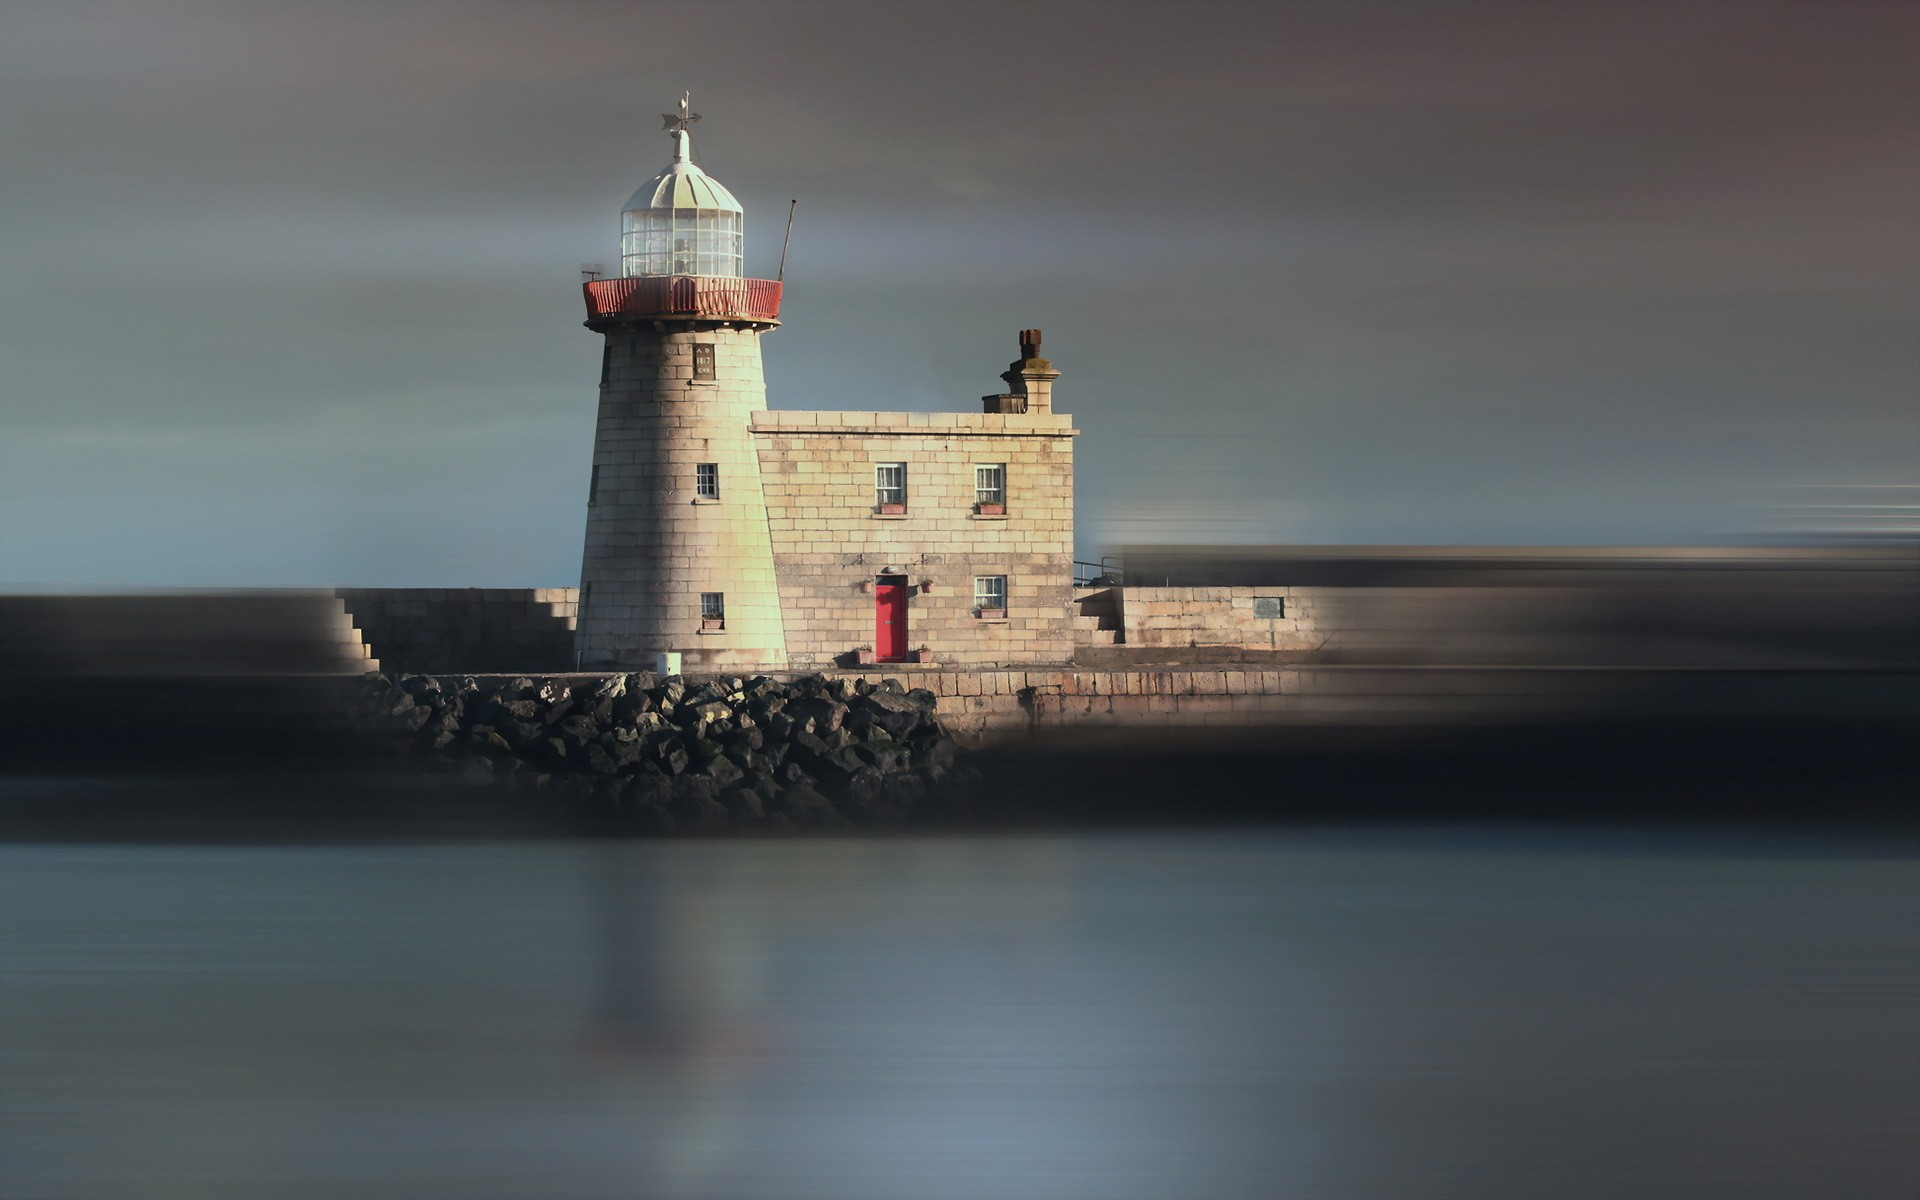 Lighthouses: Amazing Lighthouse Man Pier Rocks Images for HD 16:9 ...